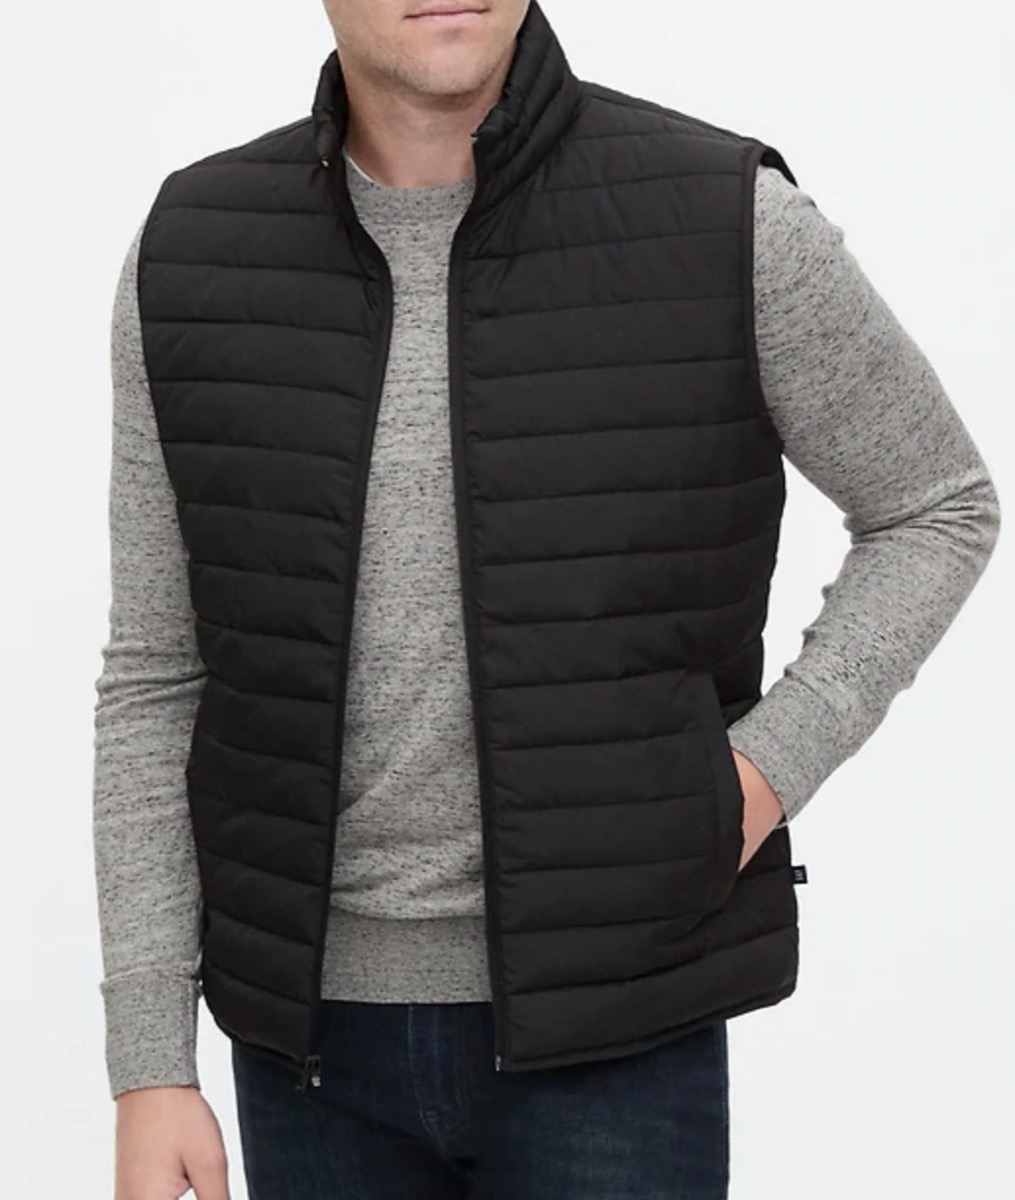 man in gray shirt and black puffer vest